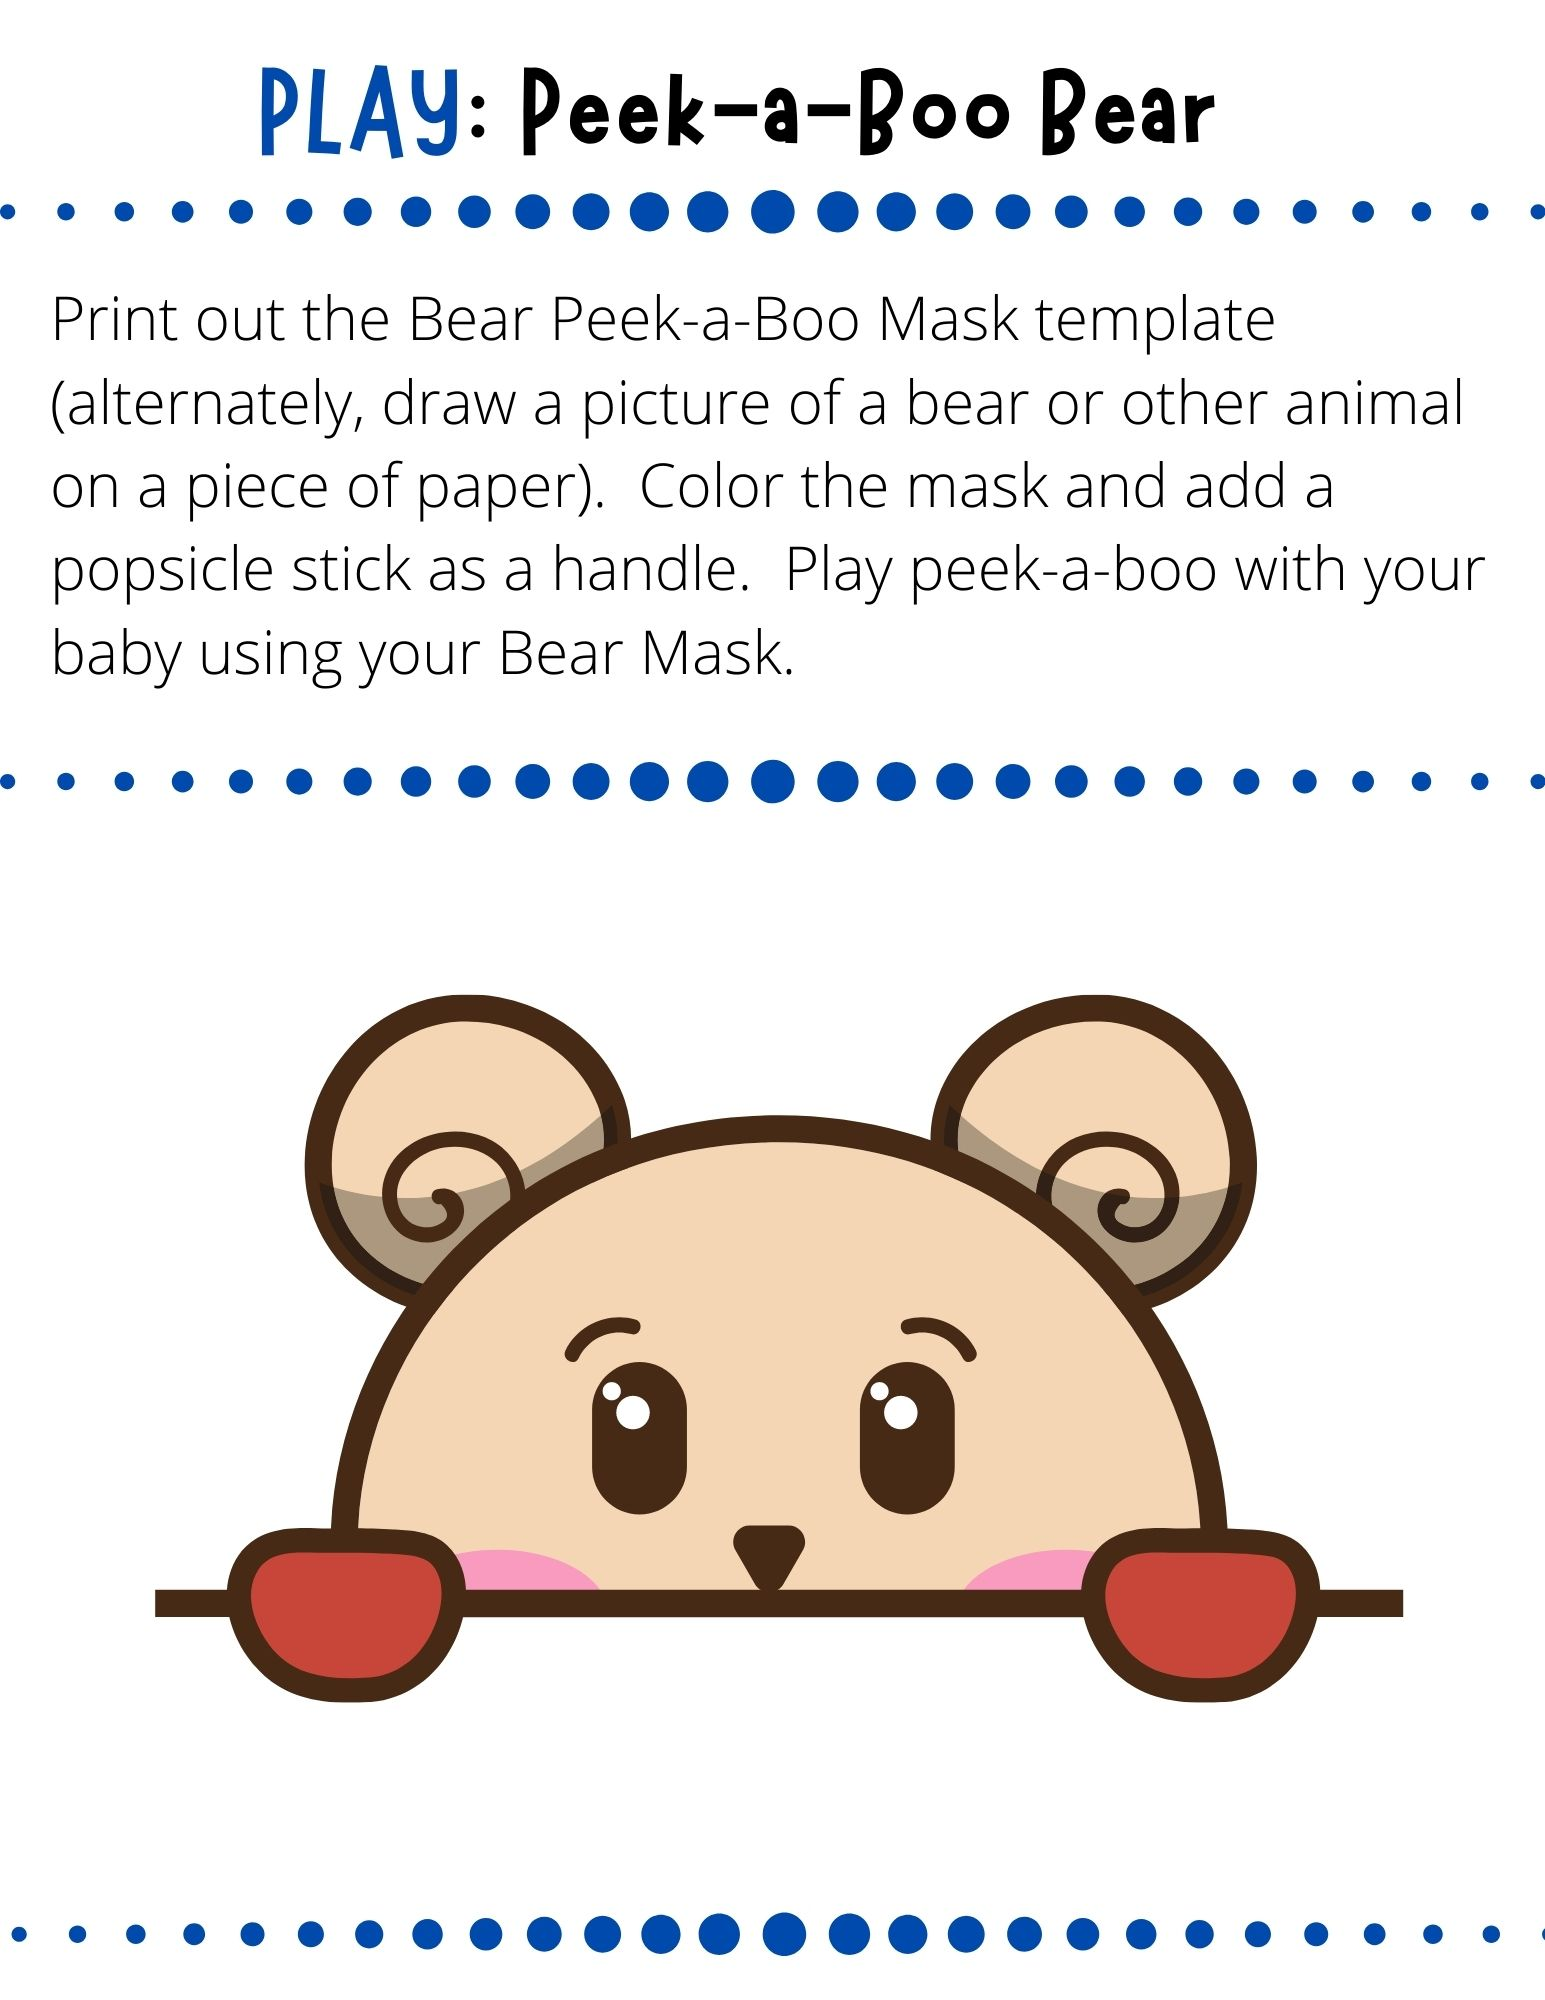 Print out the Bear Peek-a-Boo Mask template (alternately, draw a picture of a bear or other animal on a piece of paper).  Color the mask and add a popsicle stick as a handle.  Play peek-a-boo with your baby using your Bear Mask.